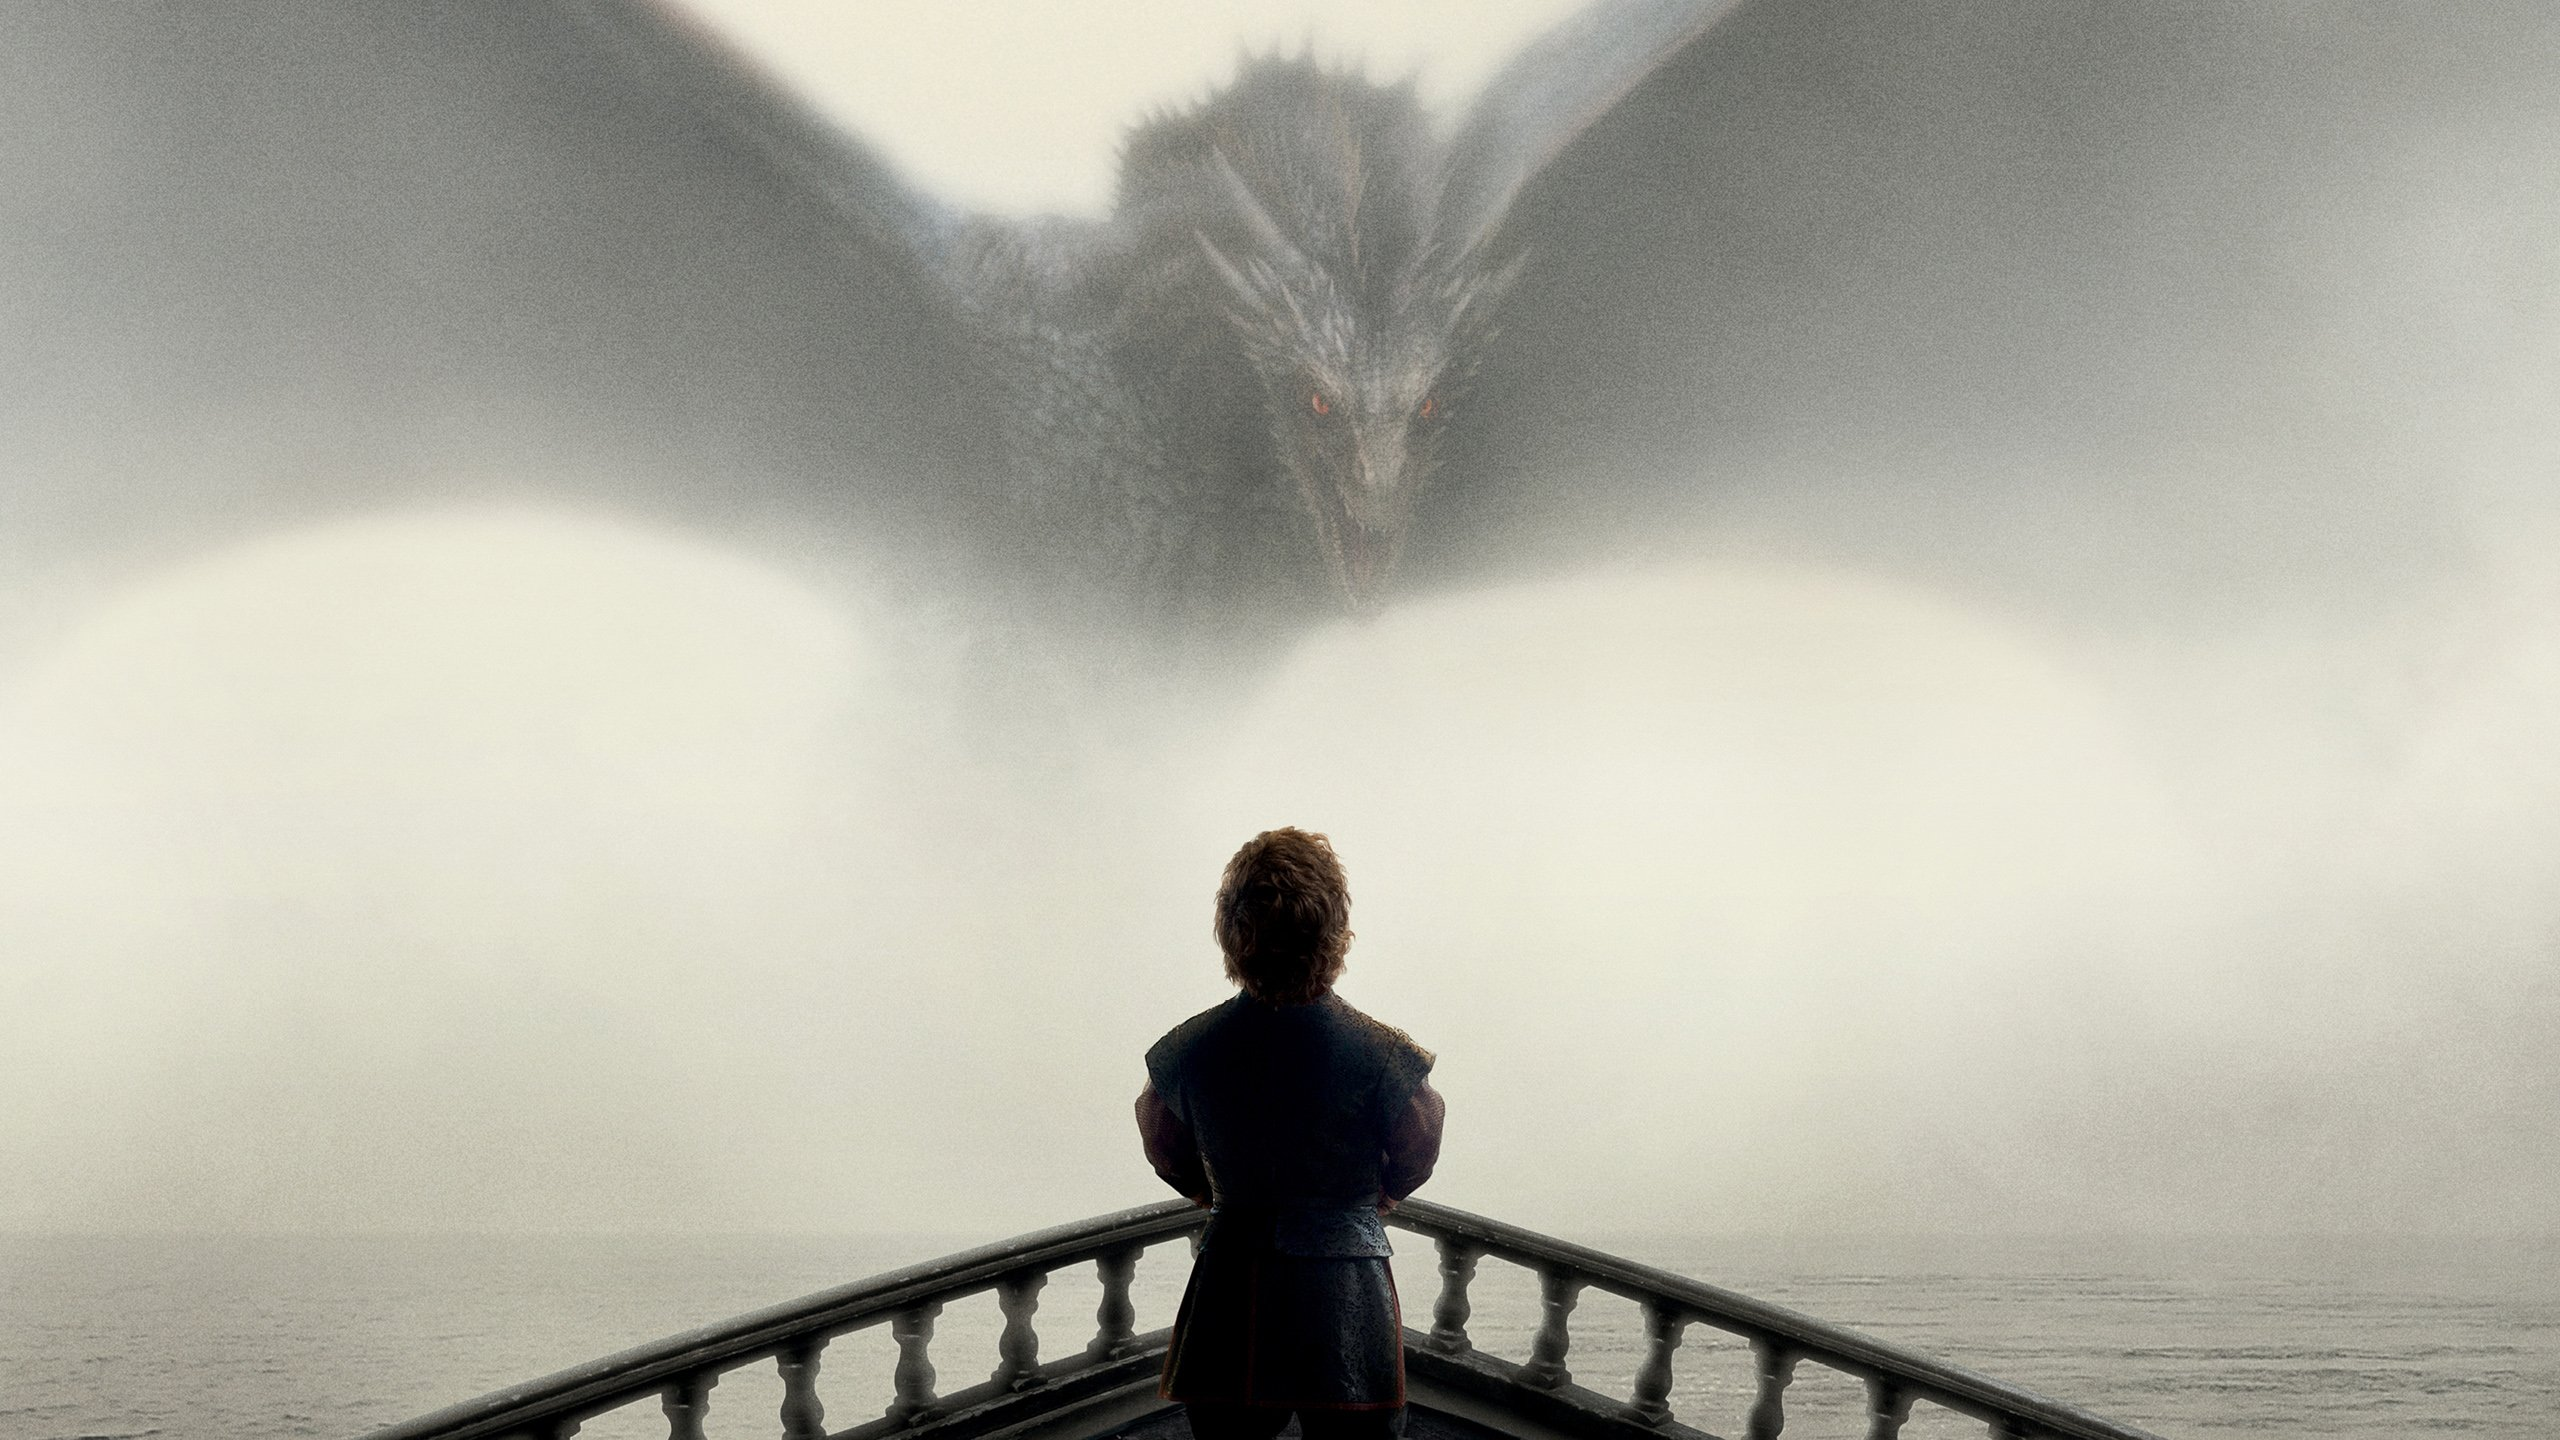 Game of Thrones Tyrion and Drogon Wallpapers HD Wallpapers 2560x1440